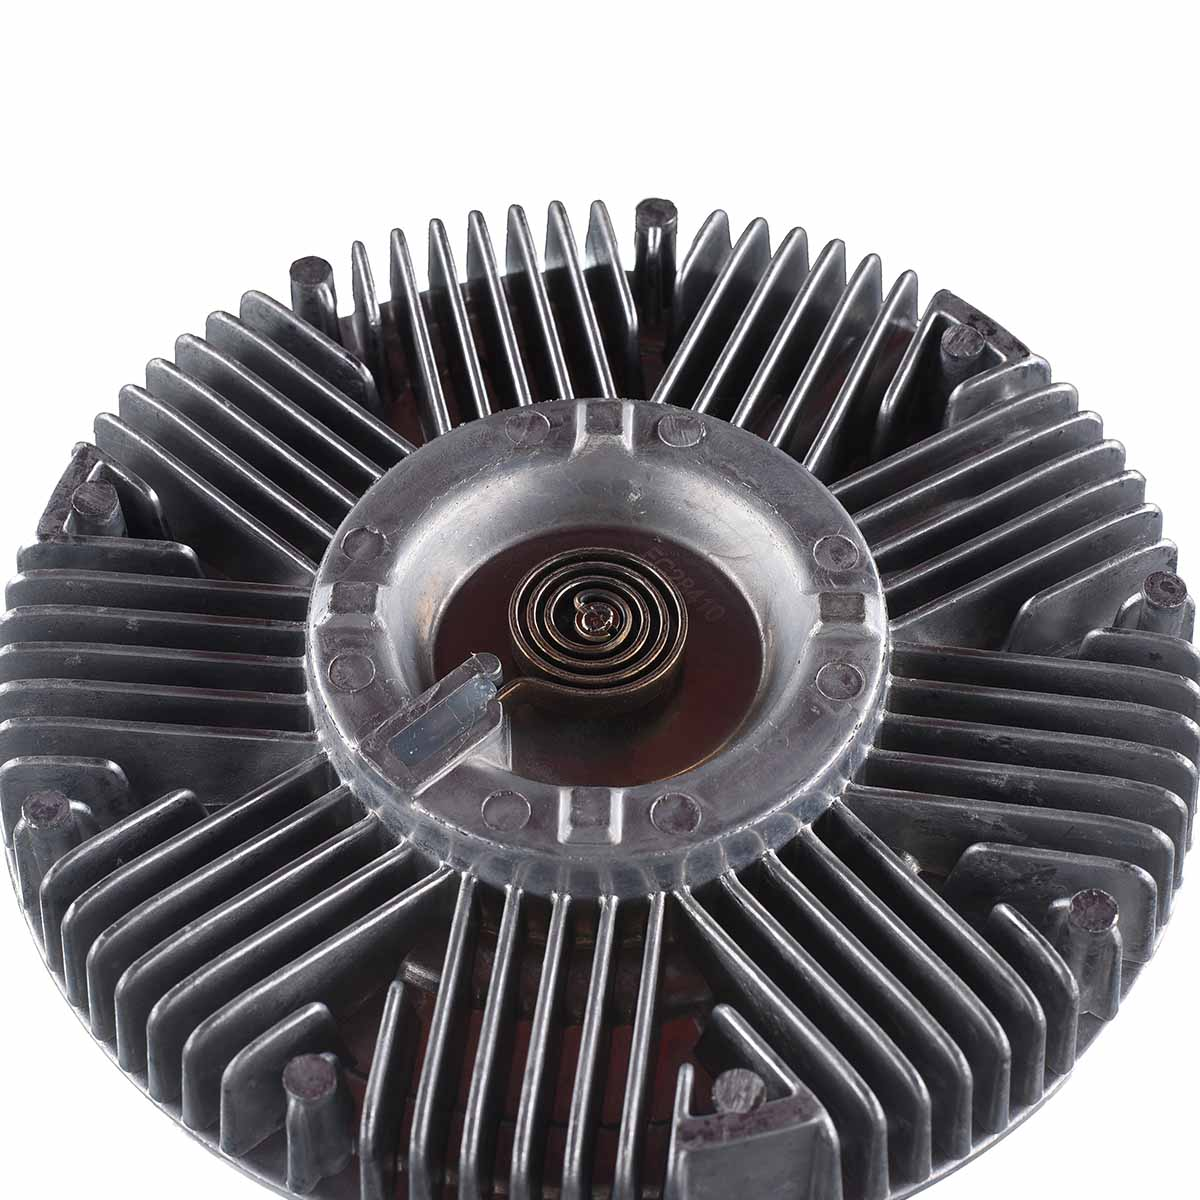 medium resolution of cooling fan clutch for ford explorer 1996 2001 mercury mountaineer 1997 1998 1999 2000 2001 v8 5 0l f67z8a616na 2841 ohv engine in fans kits from